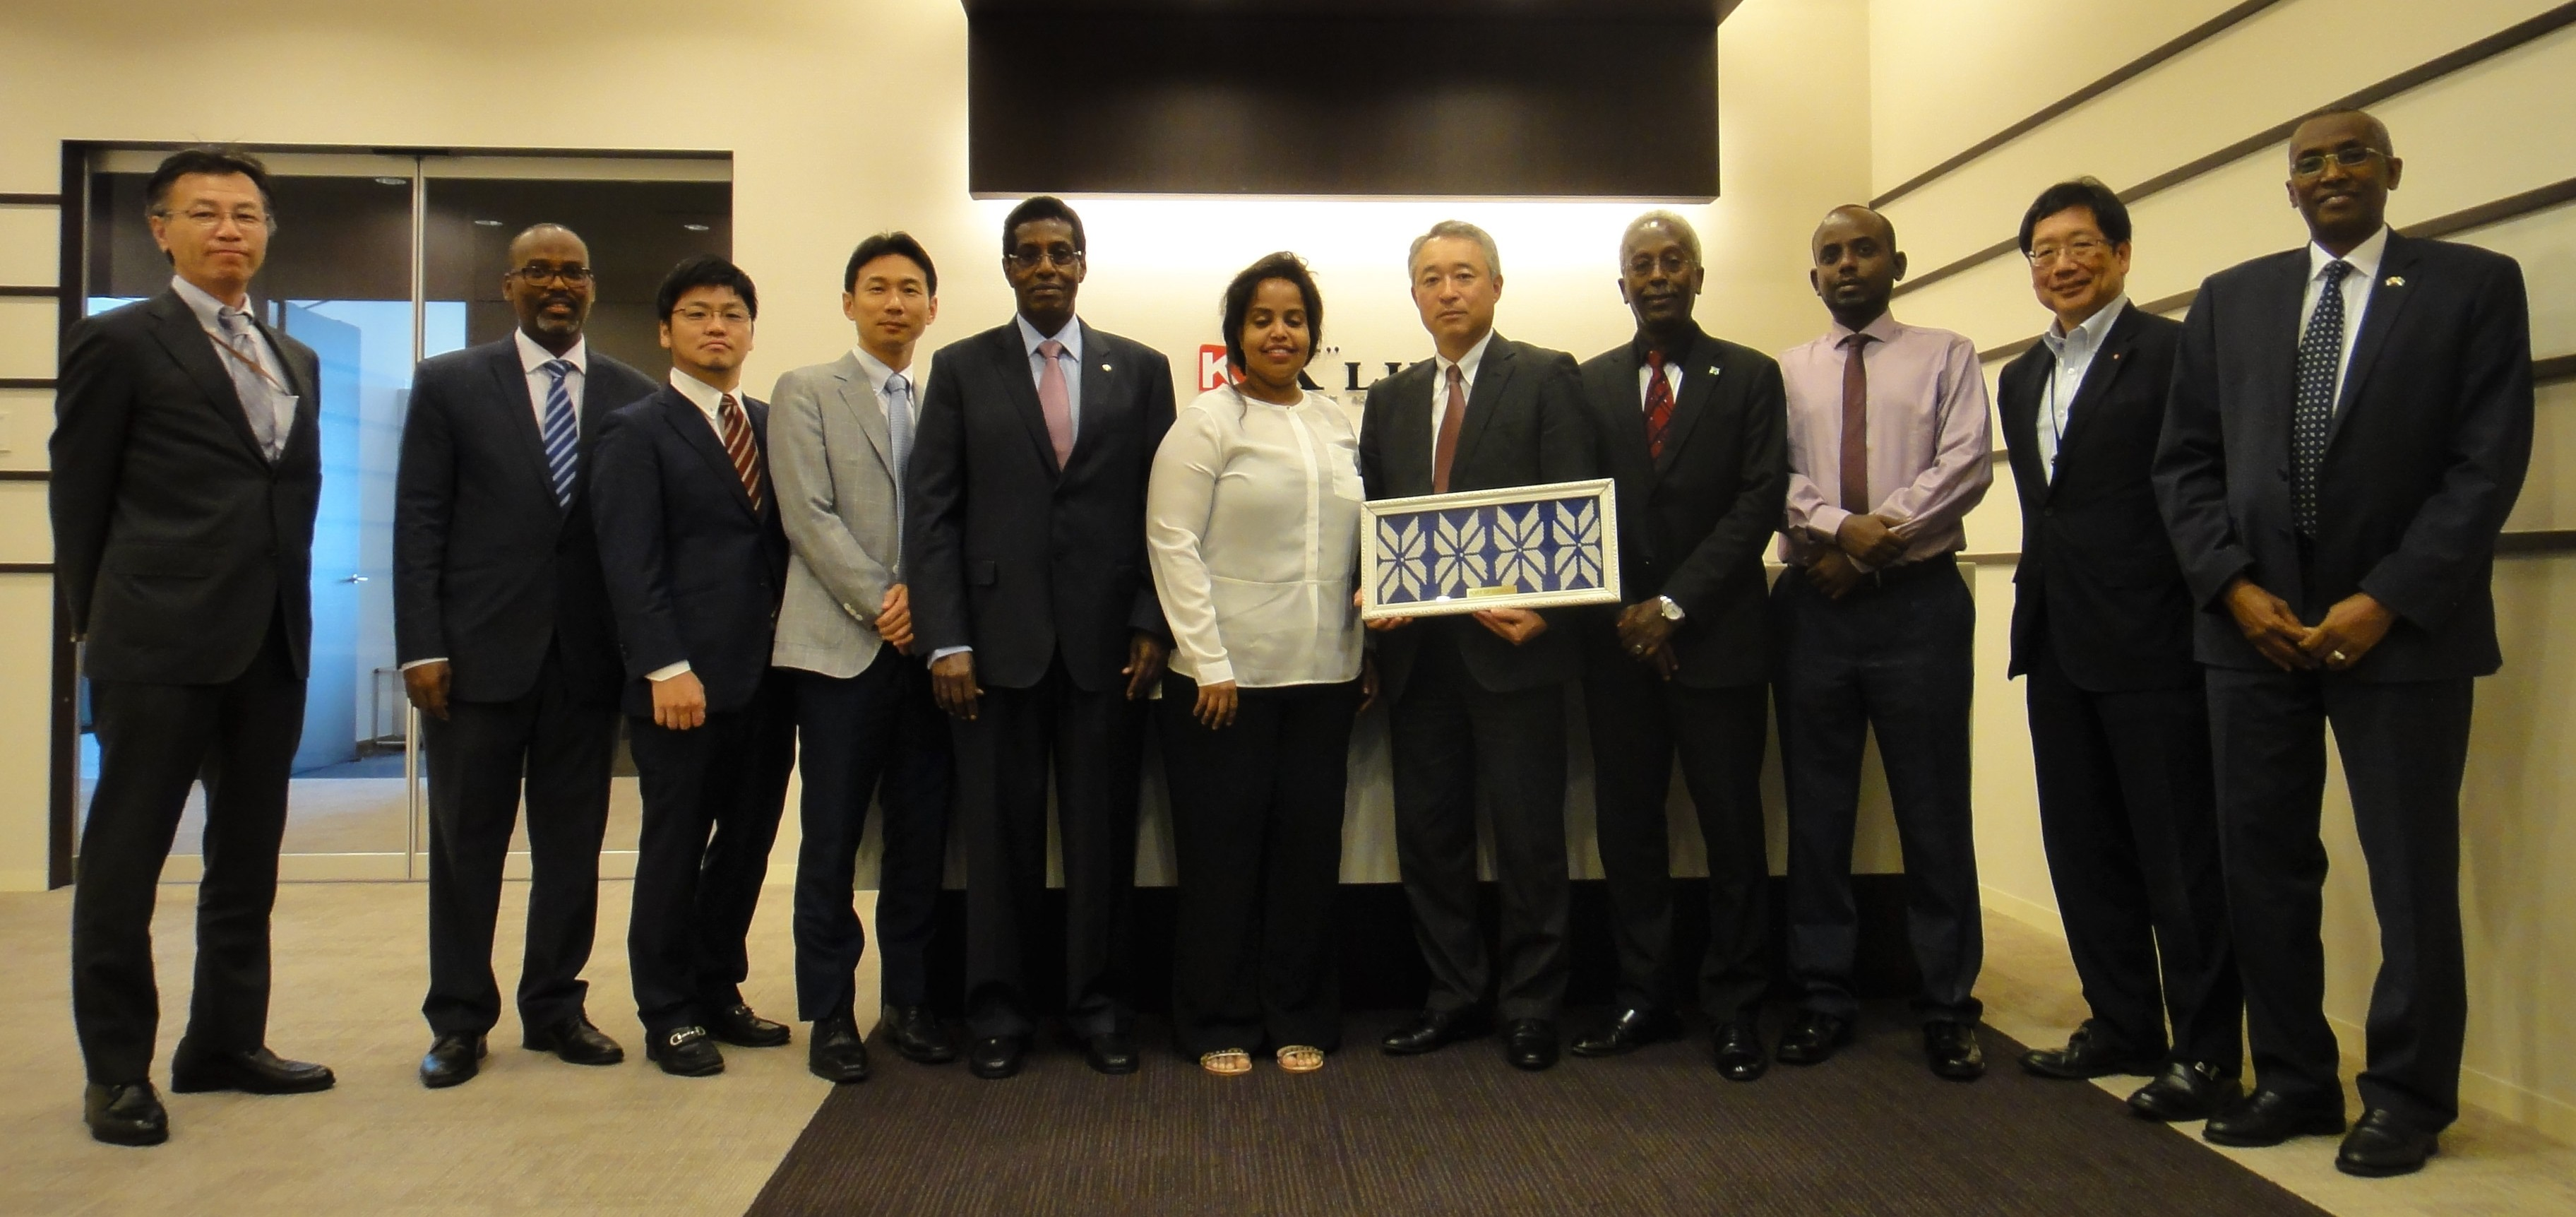 Delegation from Ports of Djibouti visit Japan